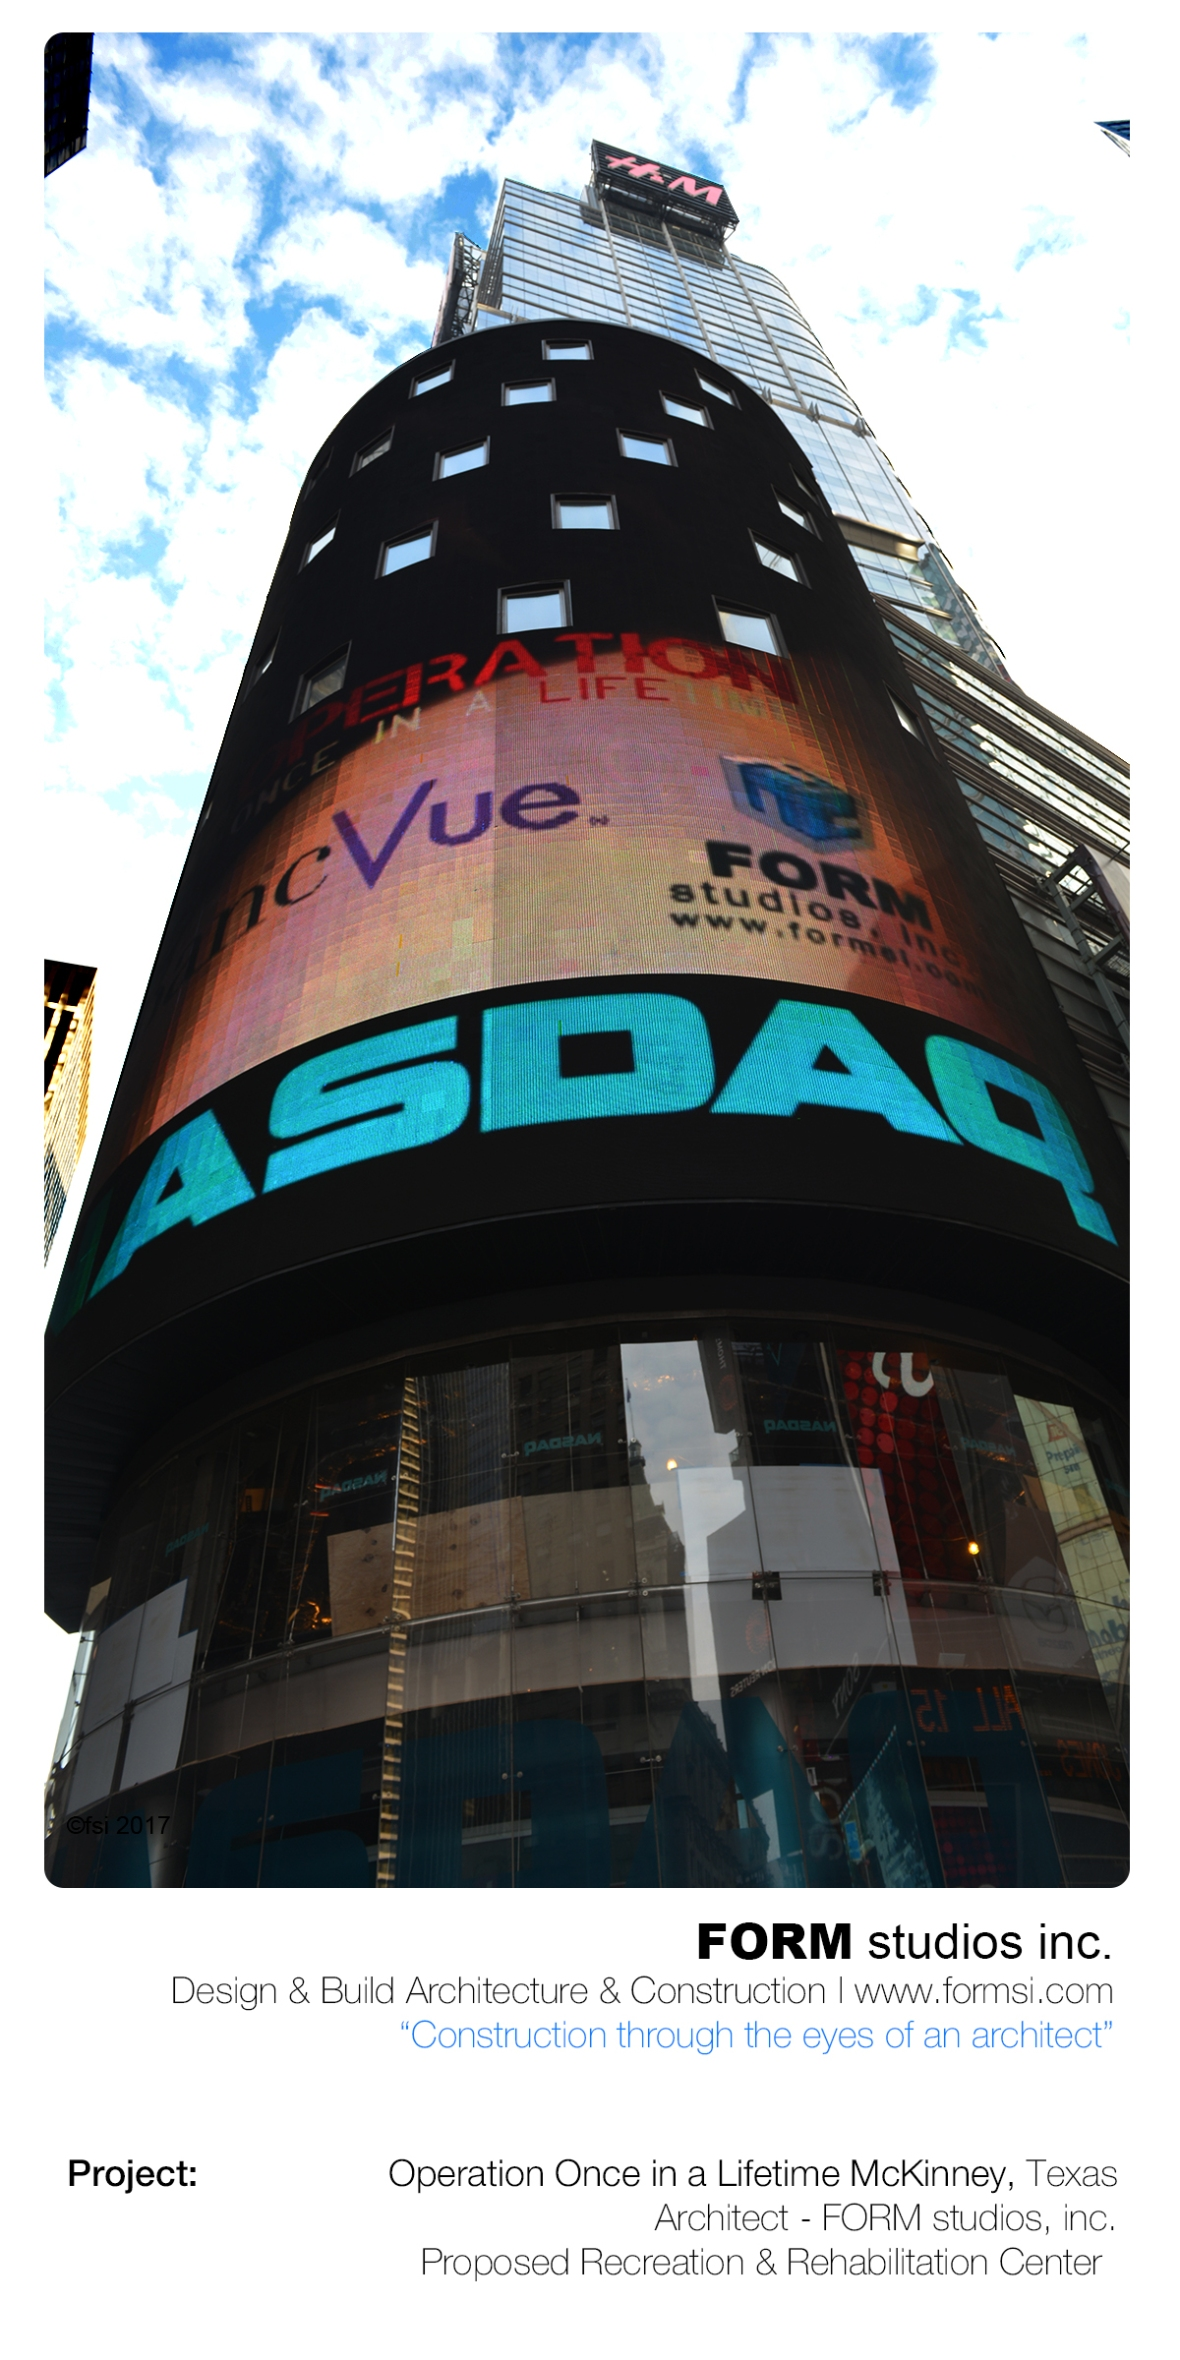 FORM VIDEO PRESENTATION ON NASDAQ FACADE AT TIMES SQUARE